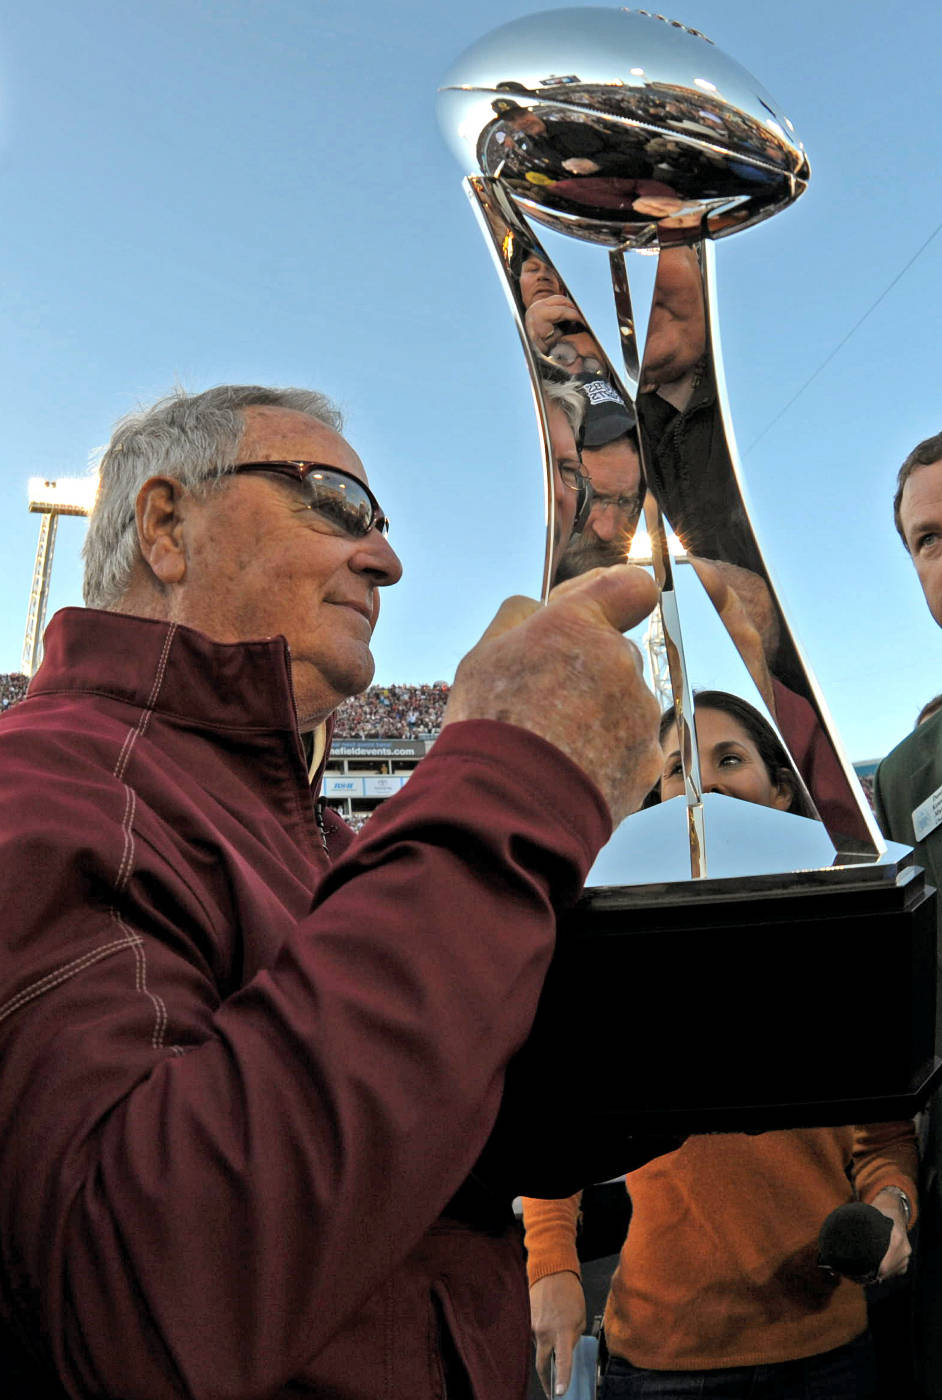 Bobby Bowden with the Gator Bowl Trophy